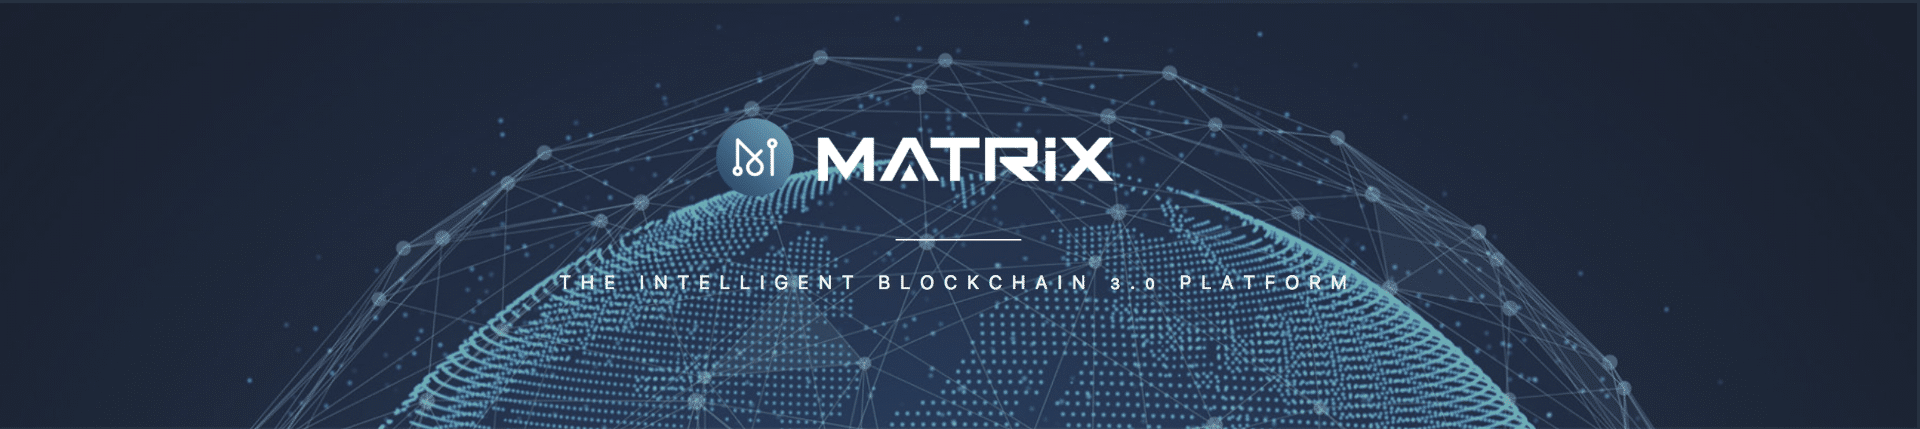 Martrix AI Network Image Article Image